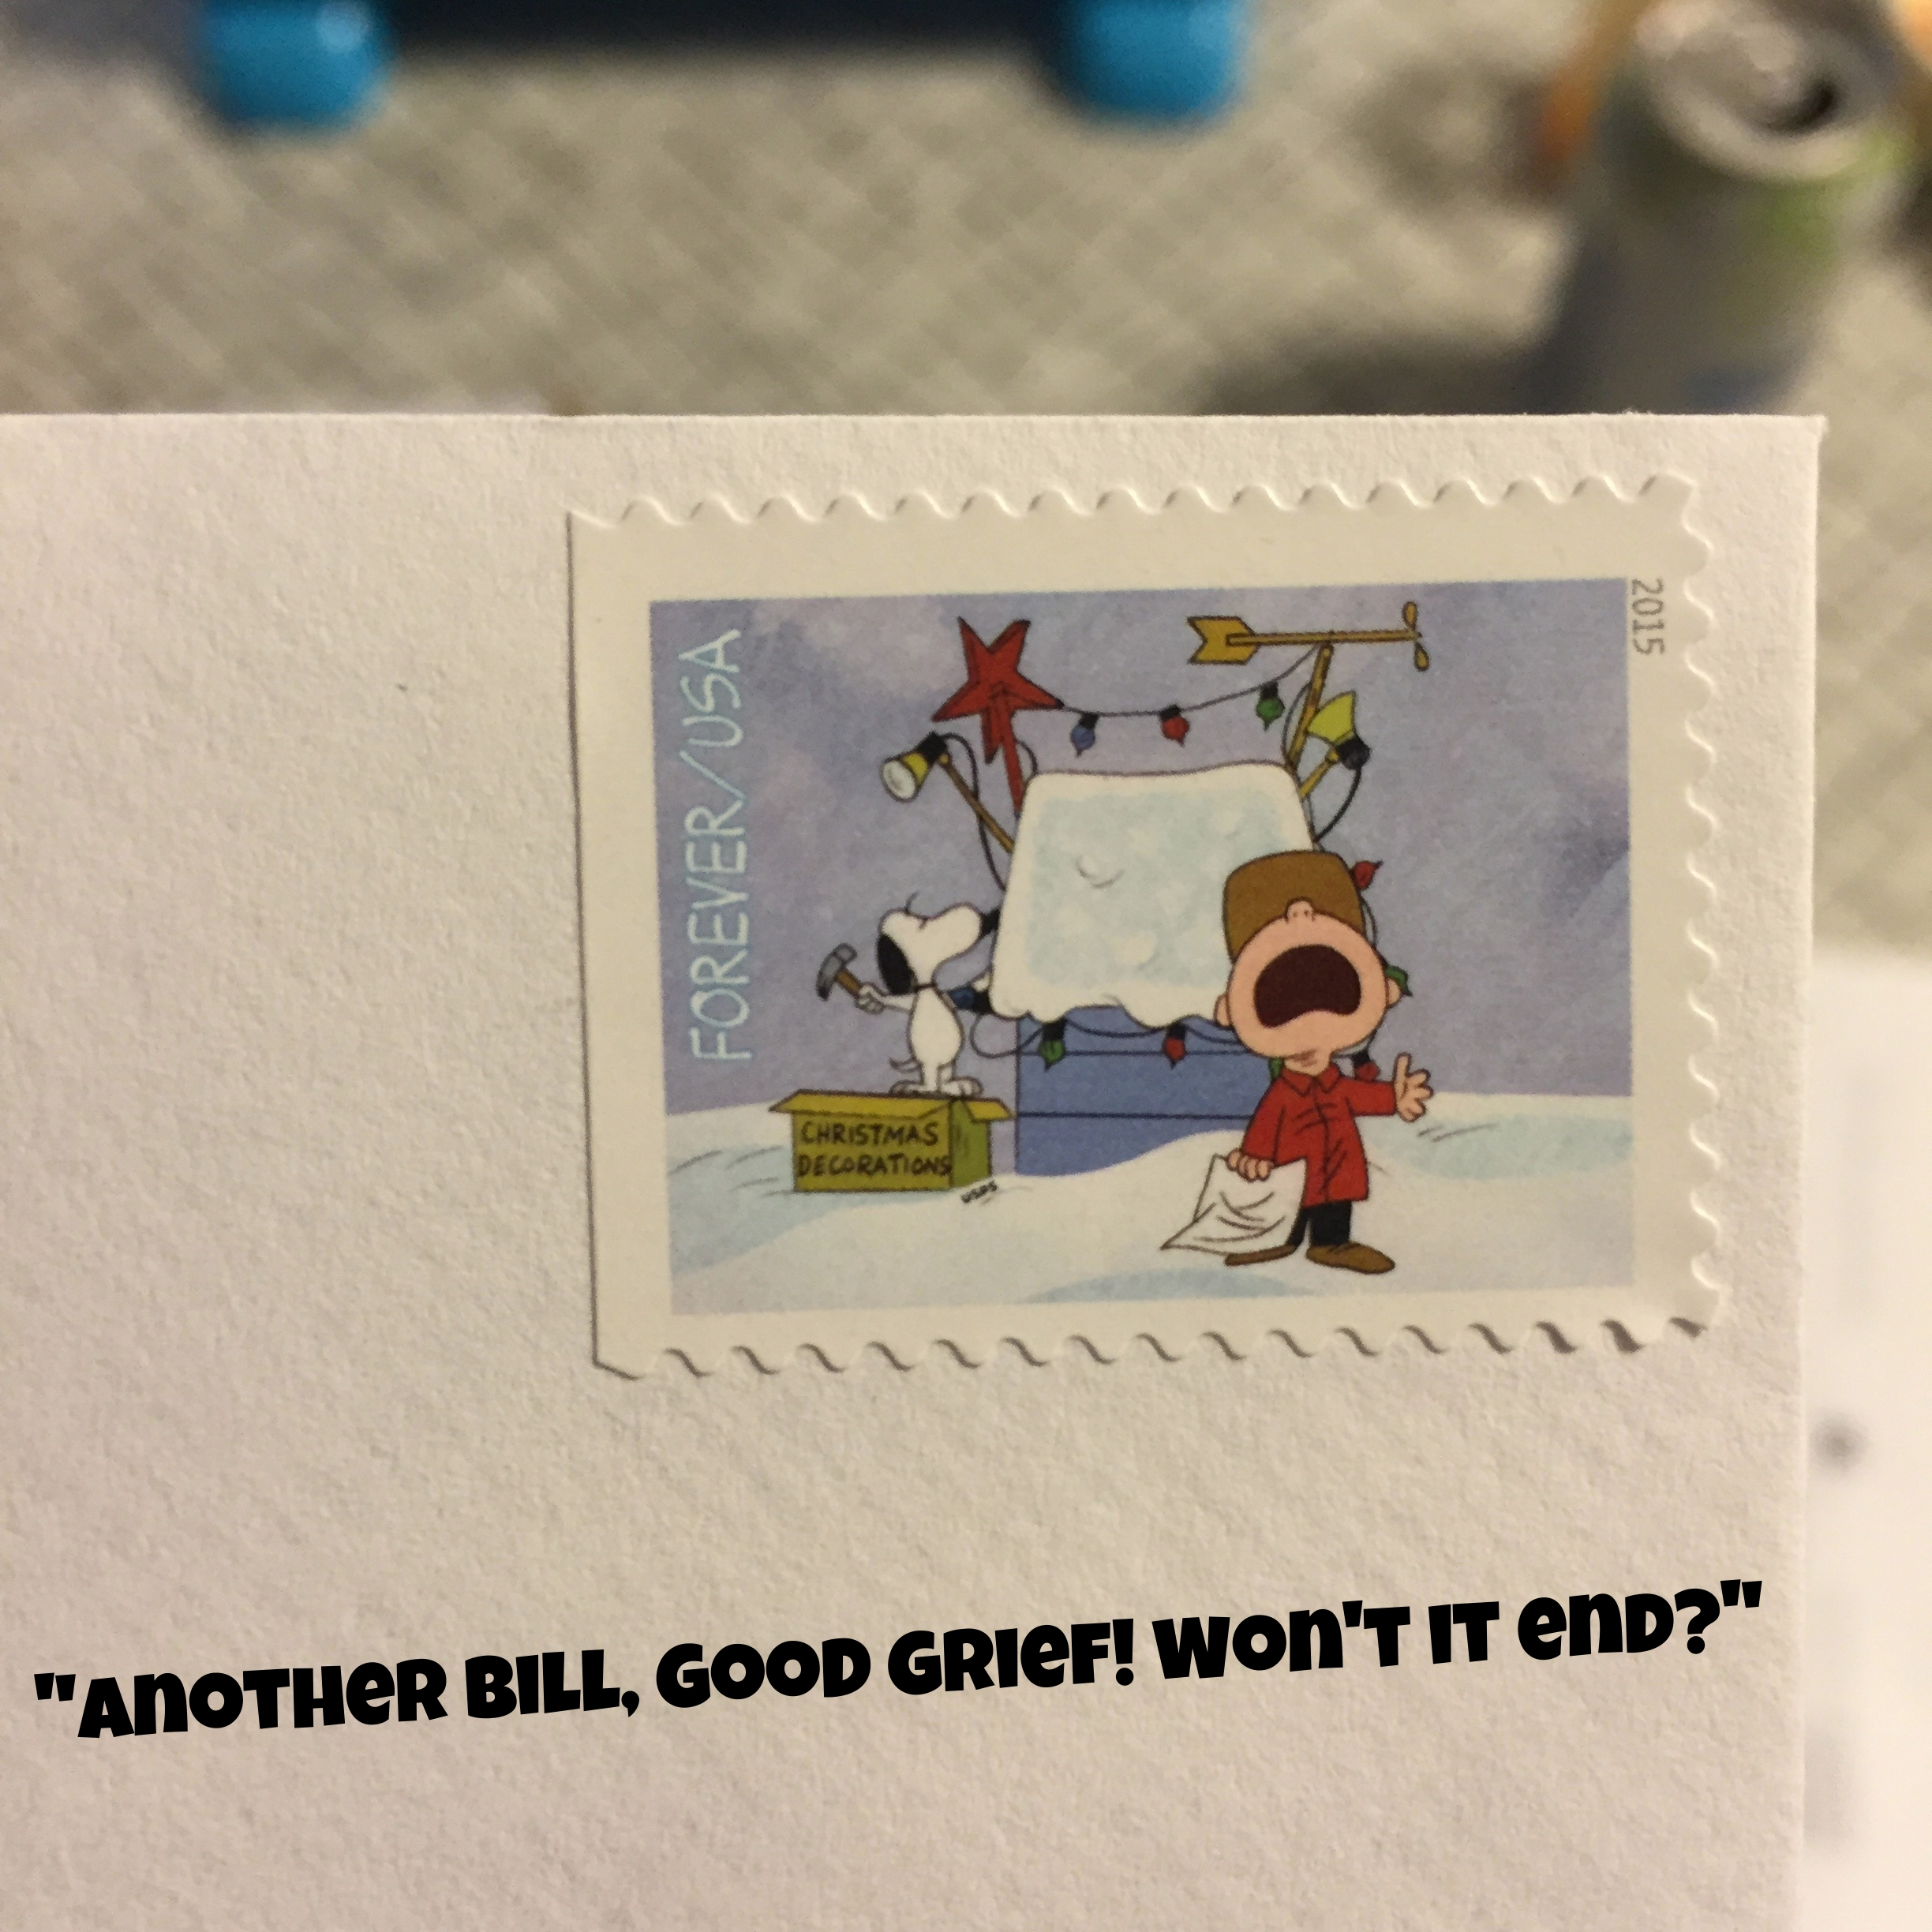 I wish I could put this stamp on every January bill. Don't they know we just had Christmas?!?